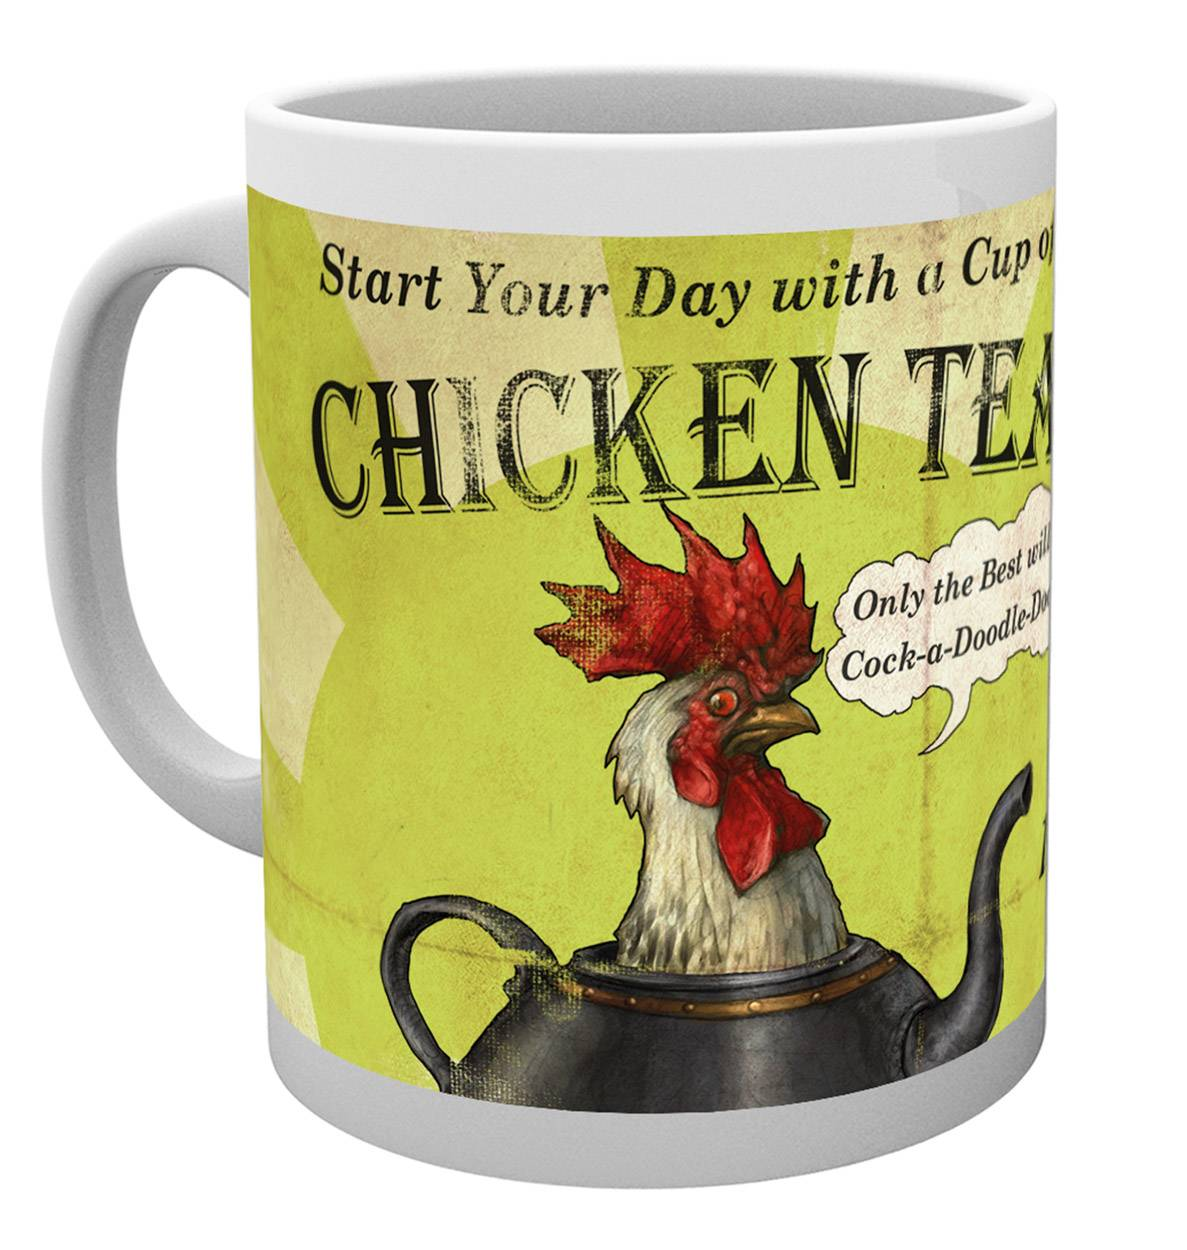 Fable Chicken Tea Mug Calendars Store Uk